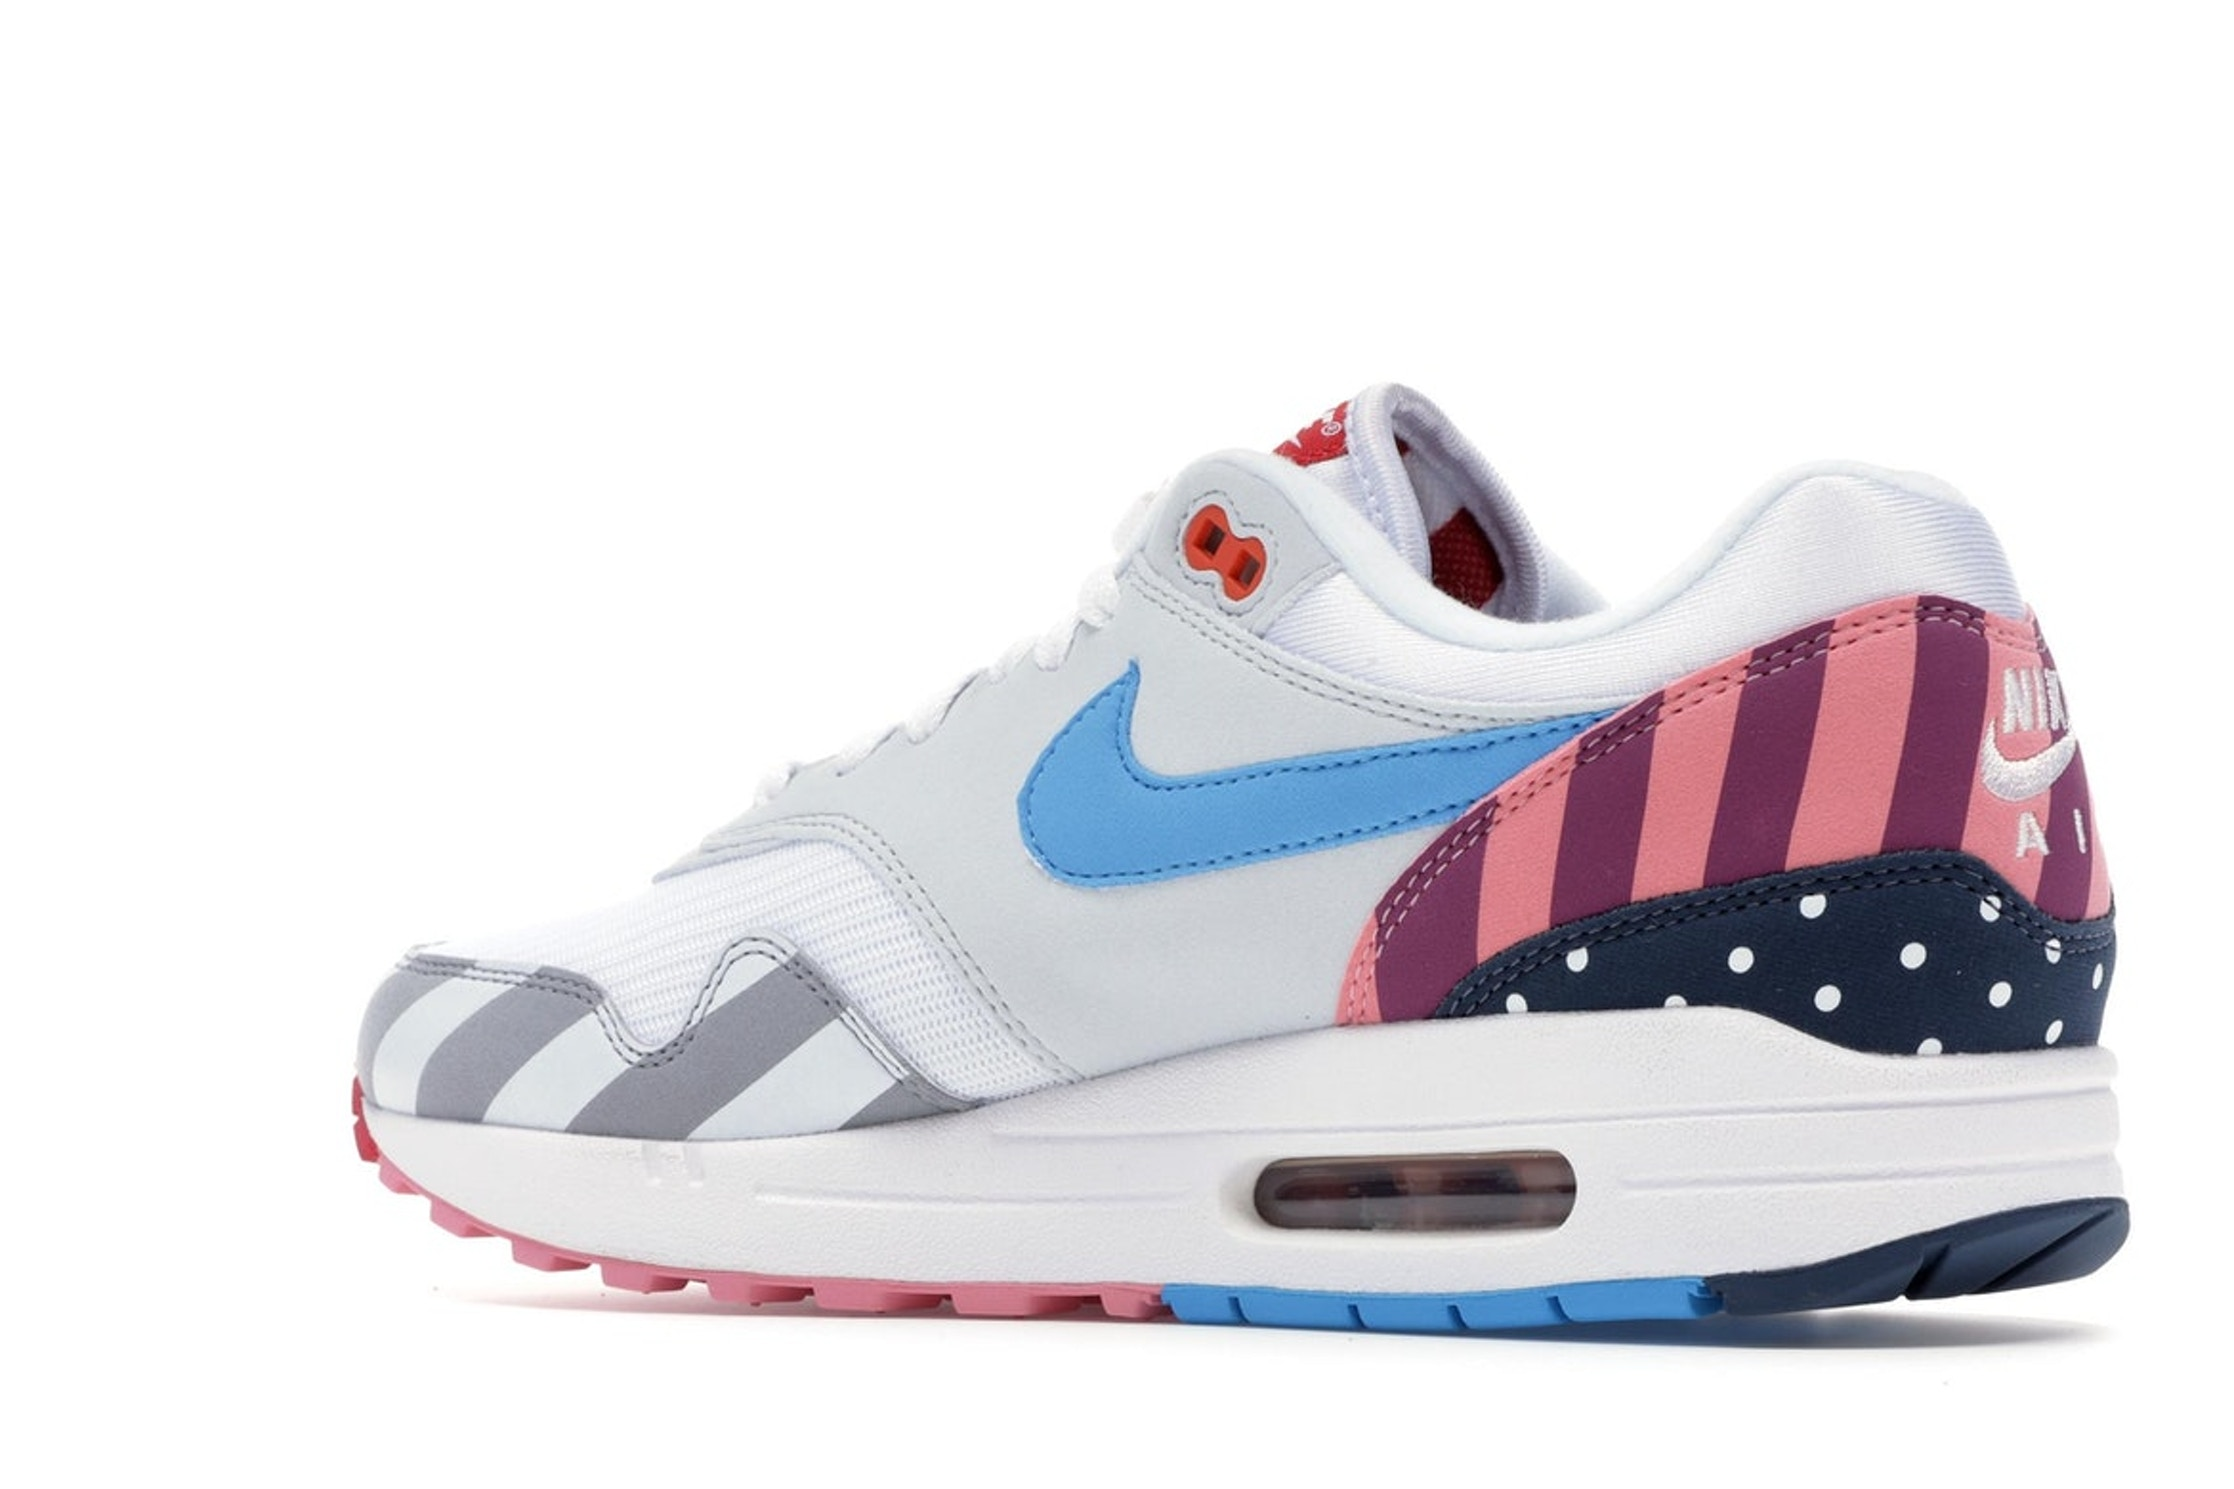 best loved 336dc ddc37 Parra Nike Images - Reverse Search